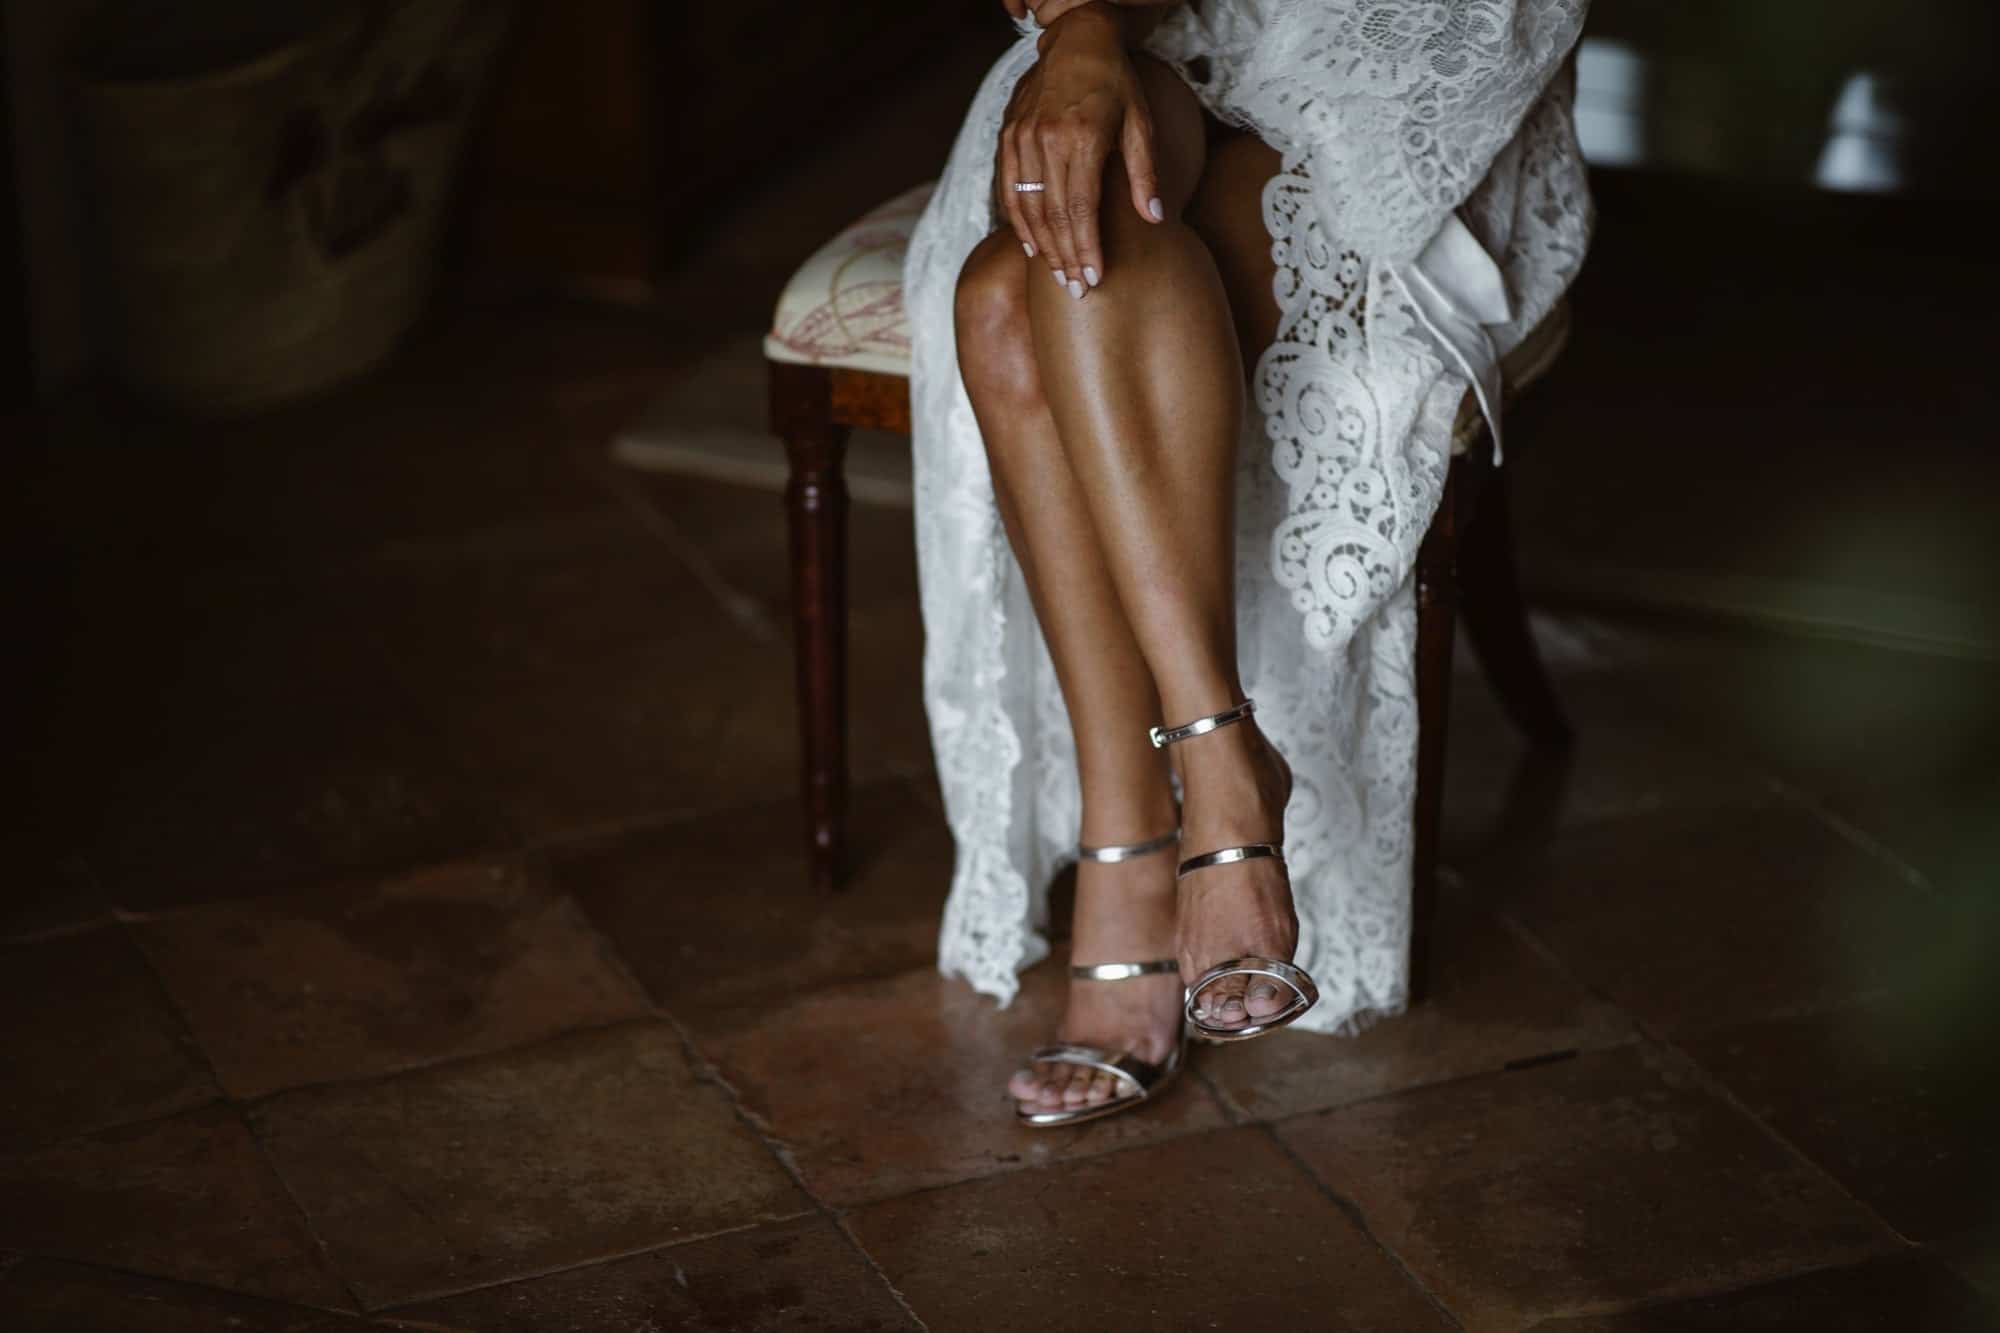 Bride crossing legs with Jimmy Choo shoes on